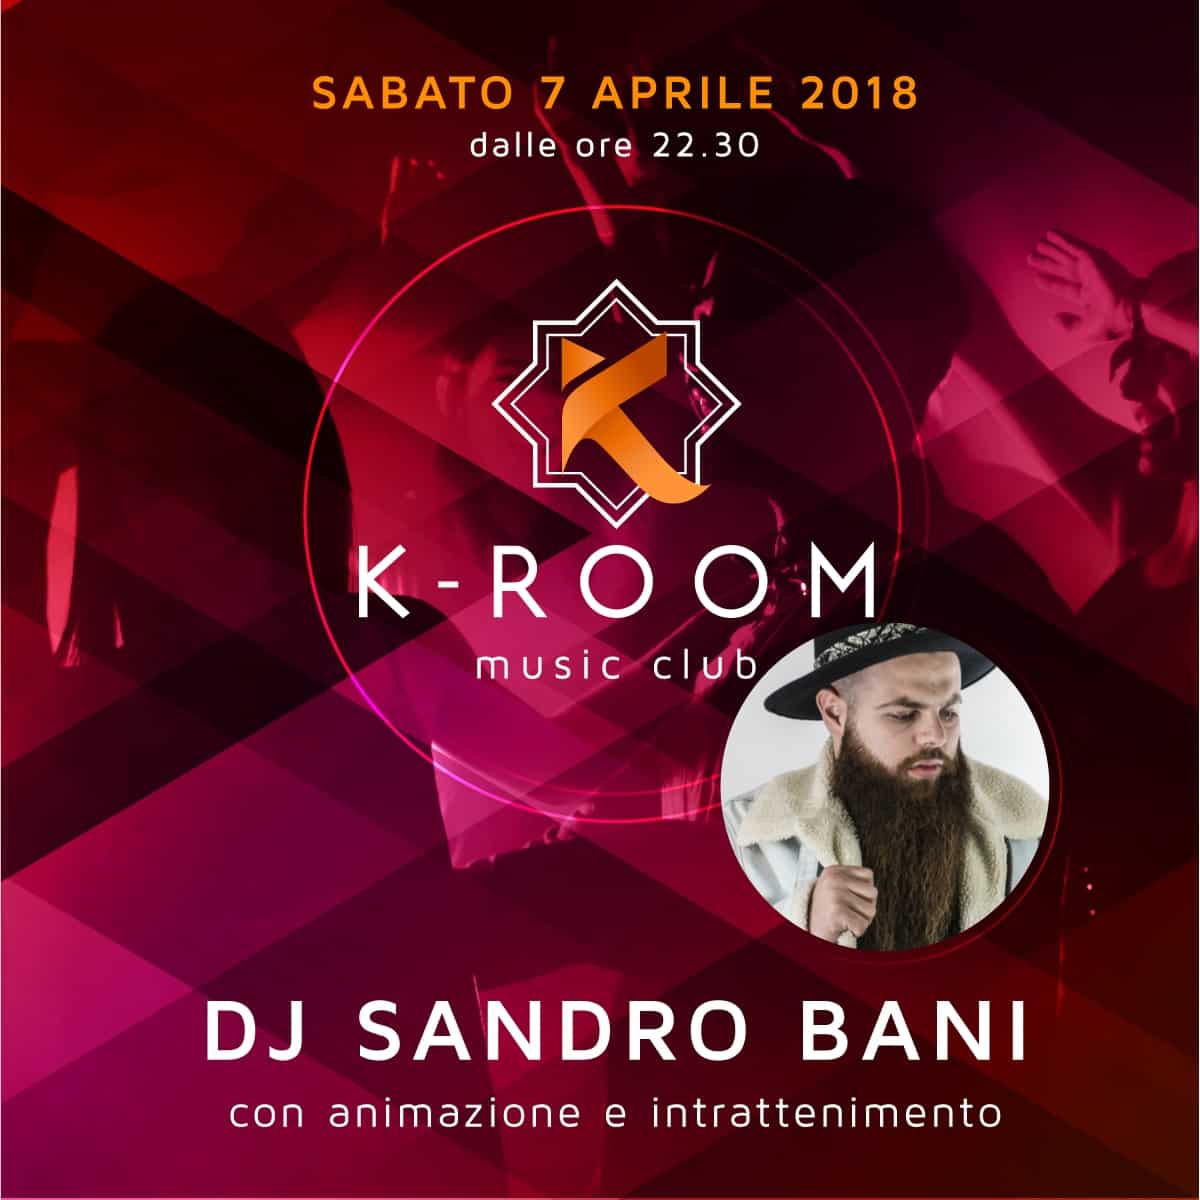 sandro-bani-chebika-k-room-cantu-april-2018